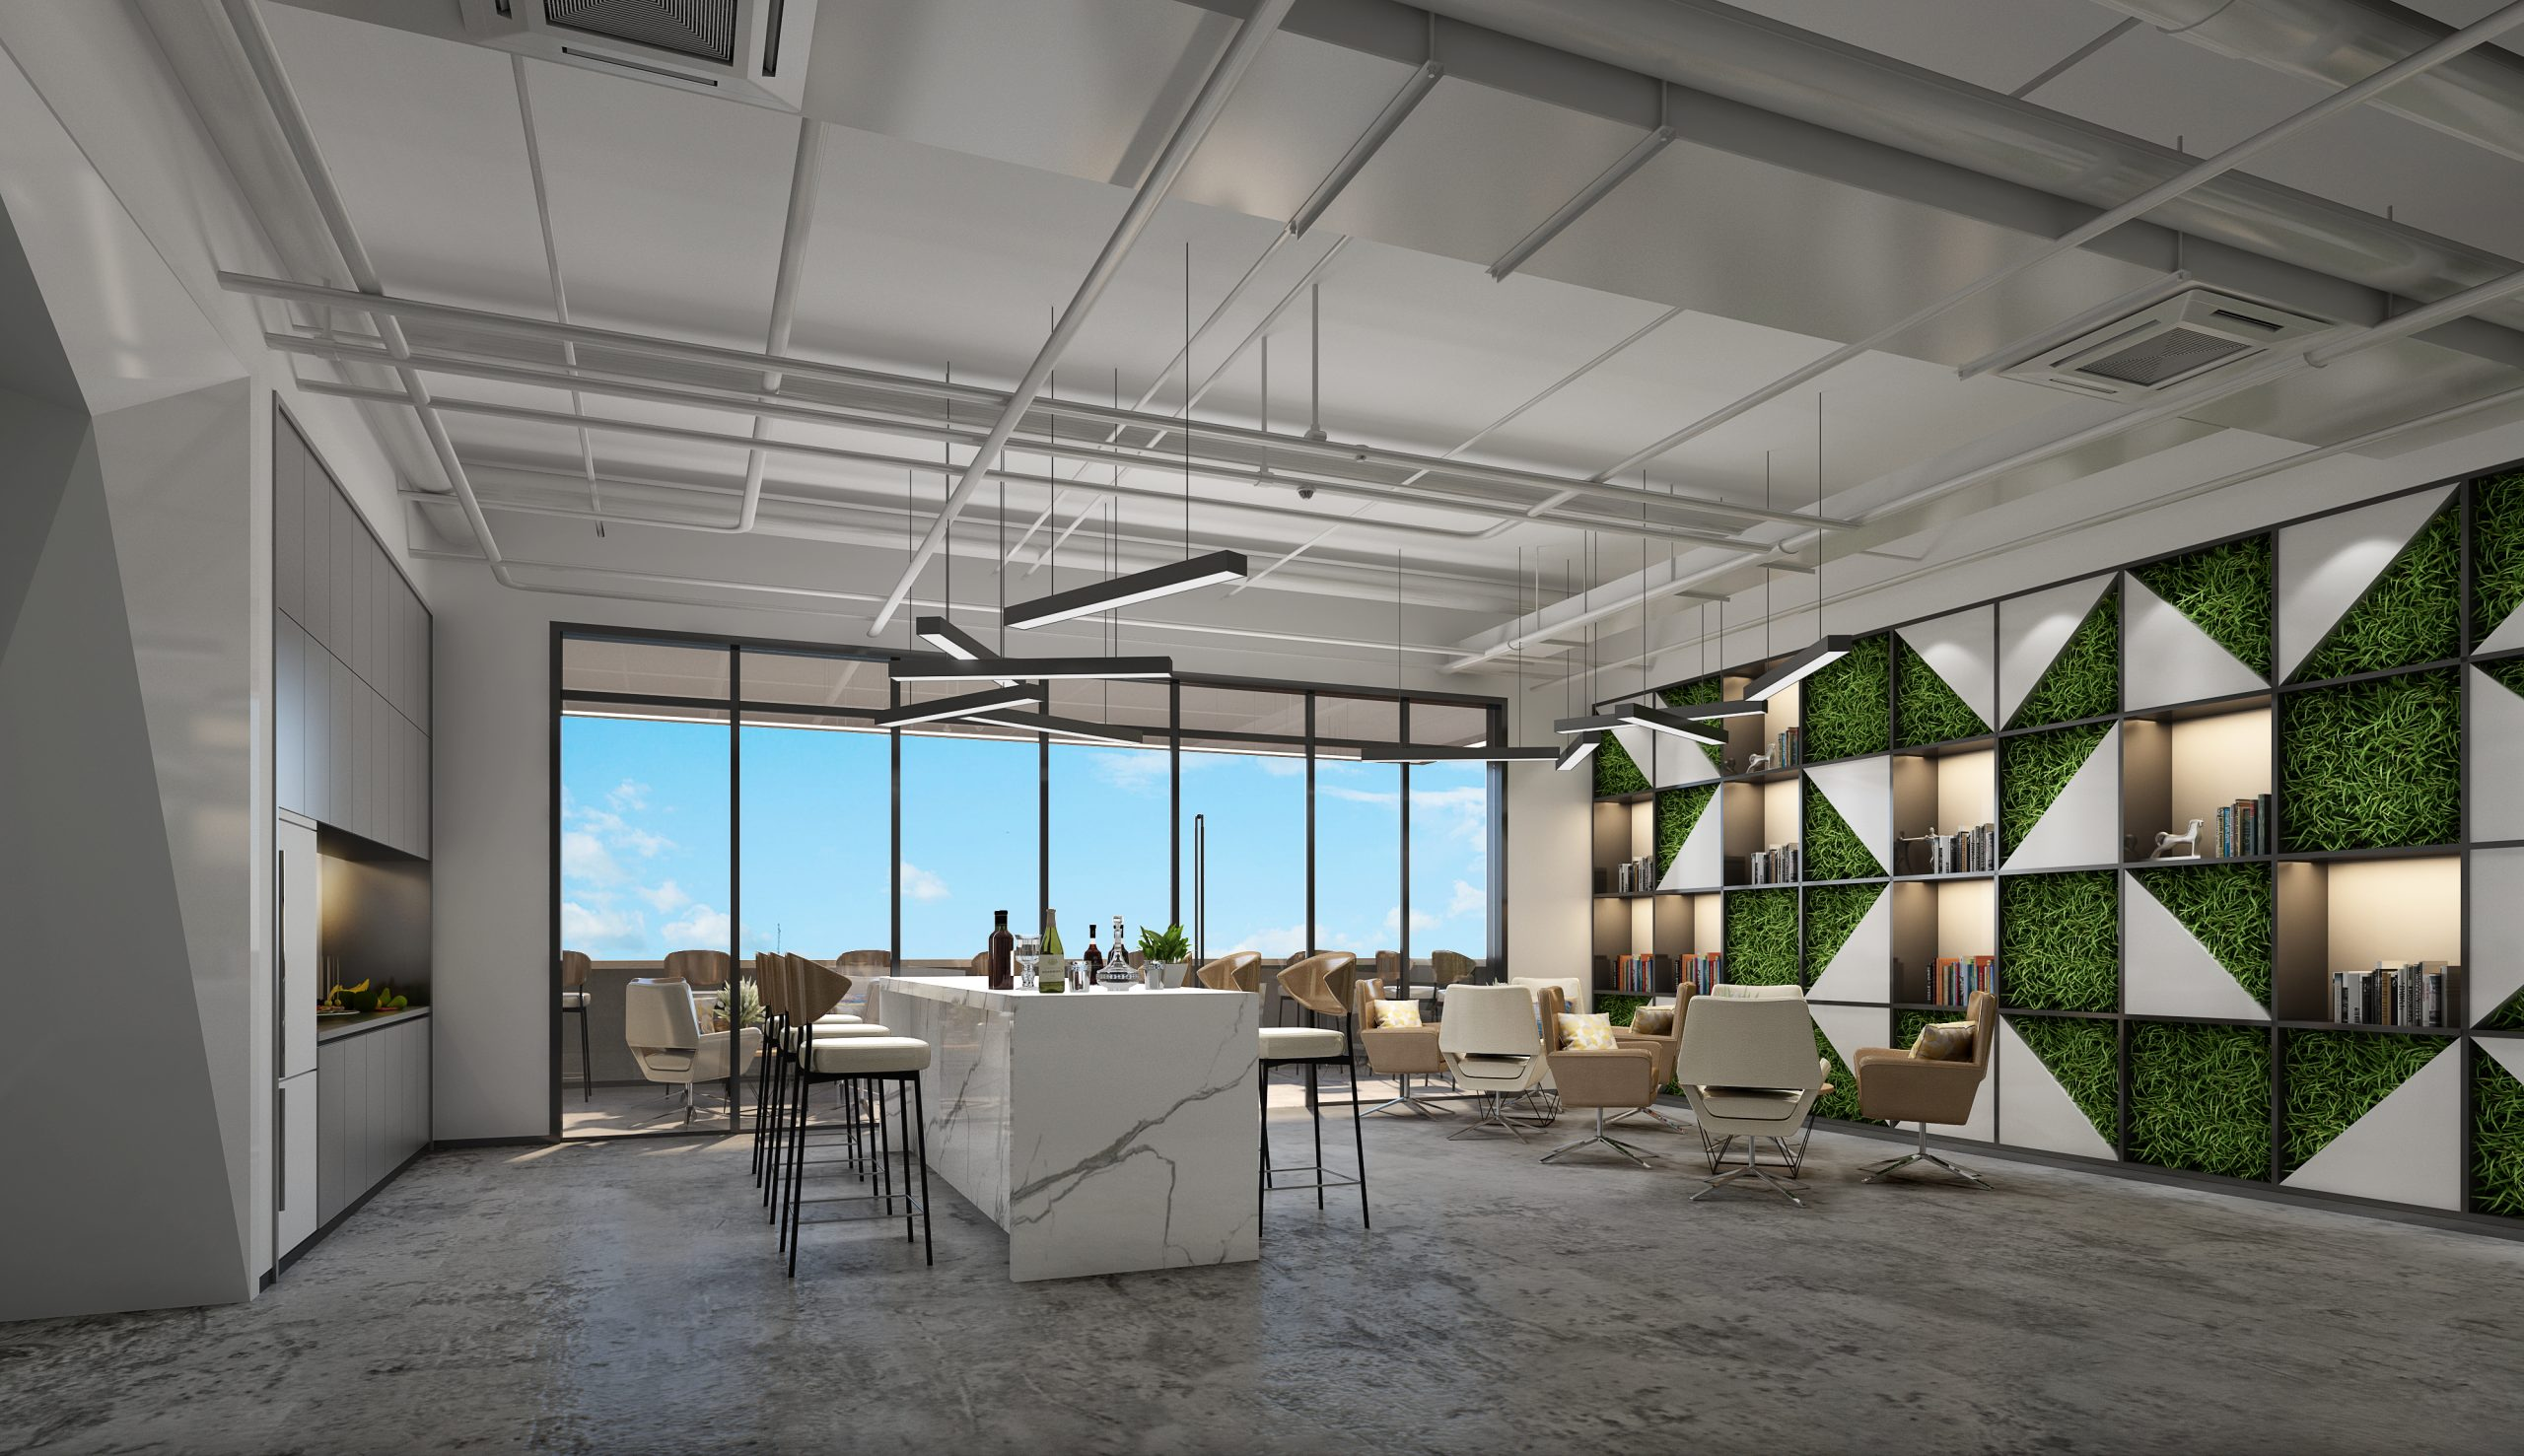 Office lounge area design renderings:3 principles about the interior design renderings of the office loung area.